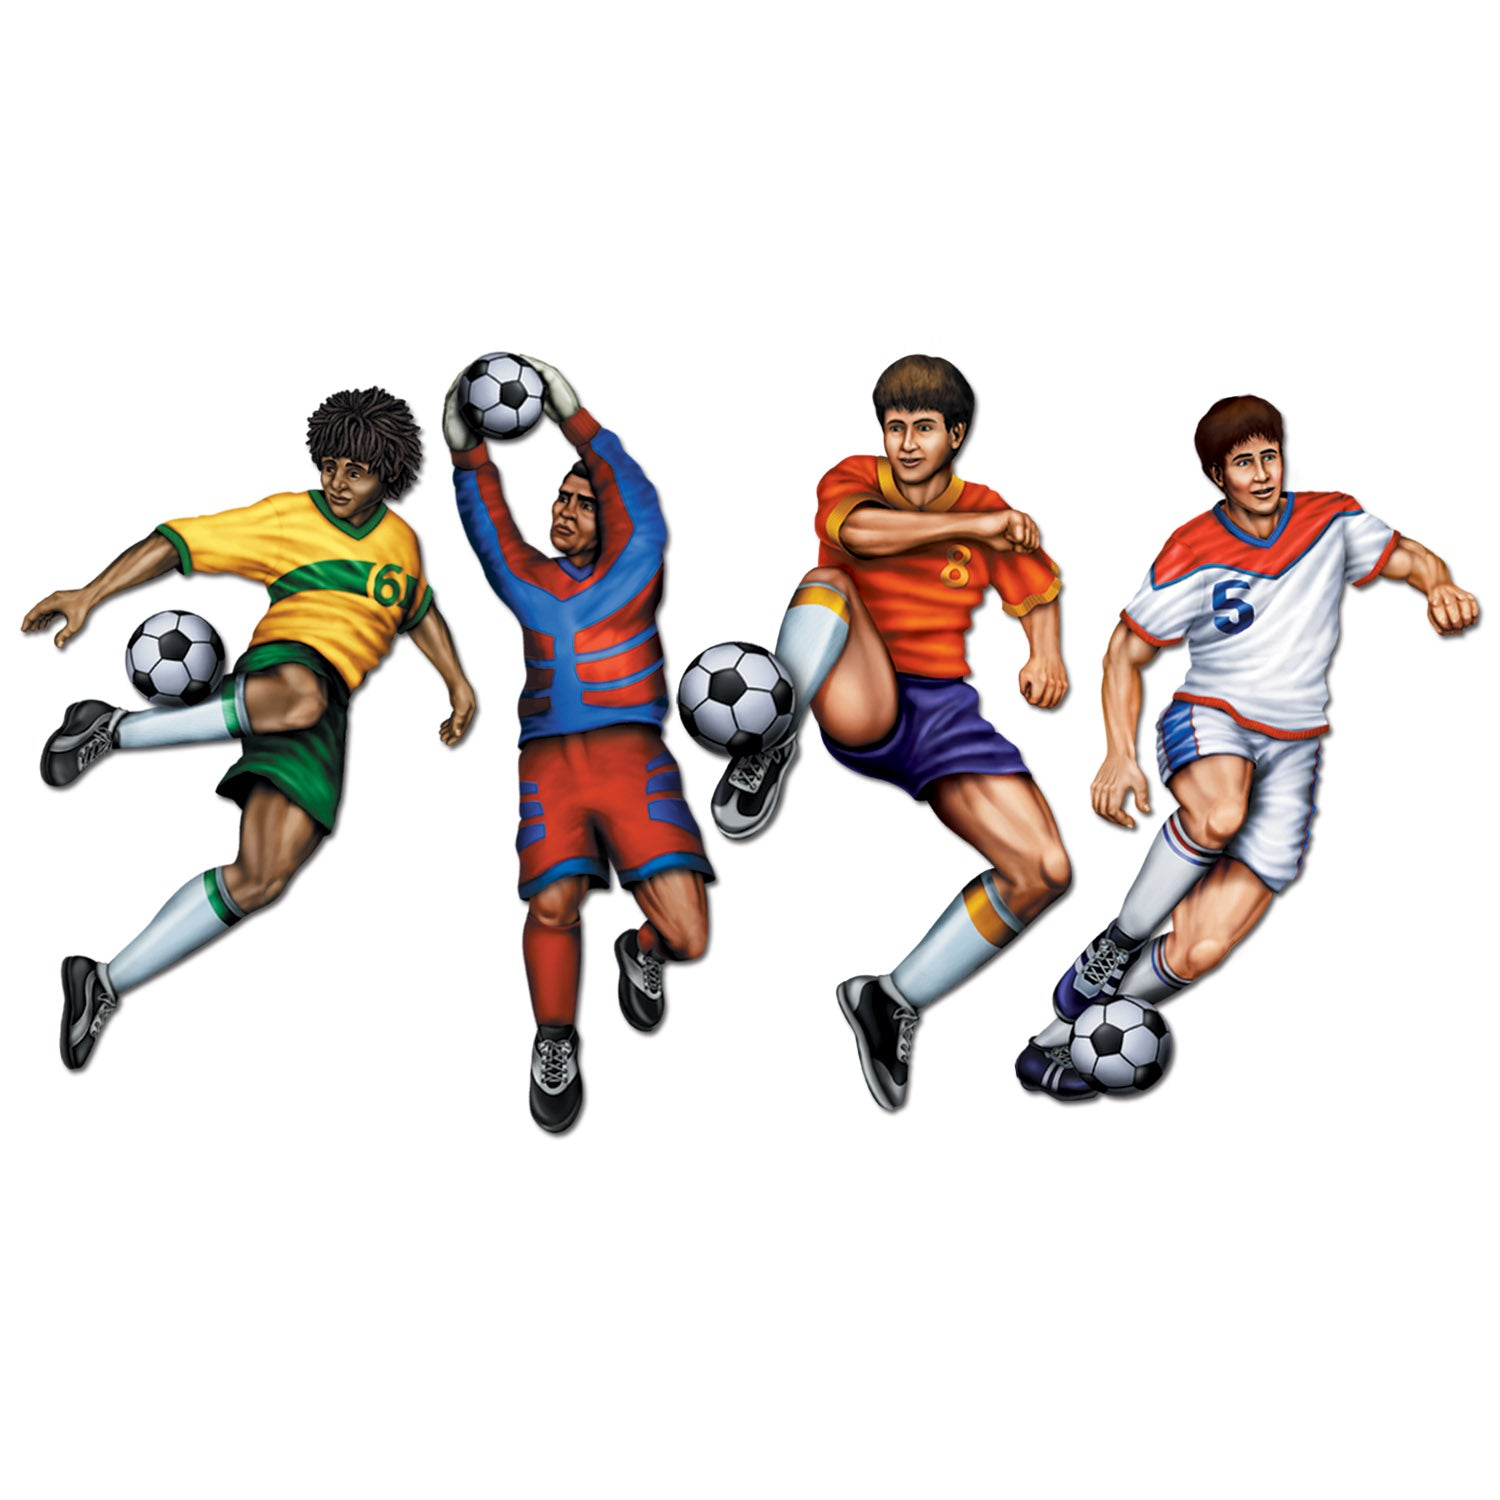 Soccer Cutouts (4/Pkg) by Beistle - Soccer Theme Decorations